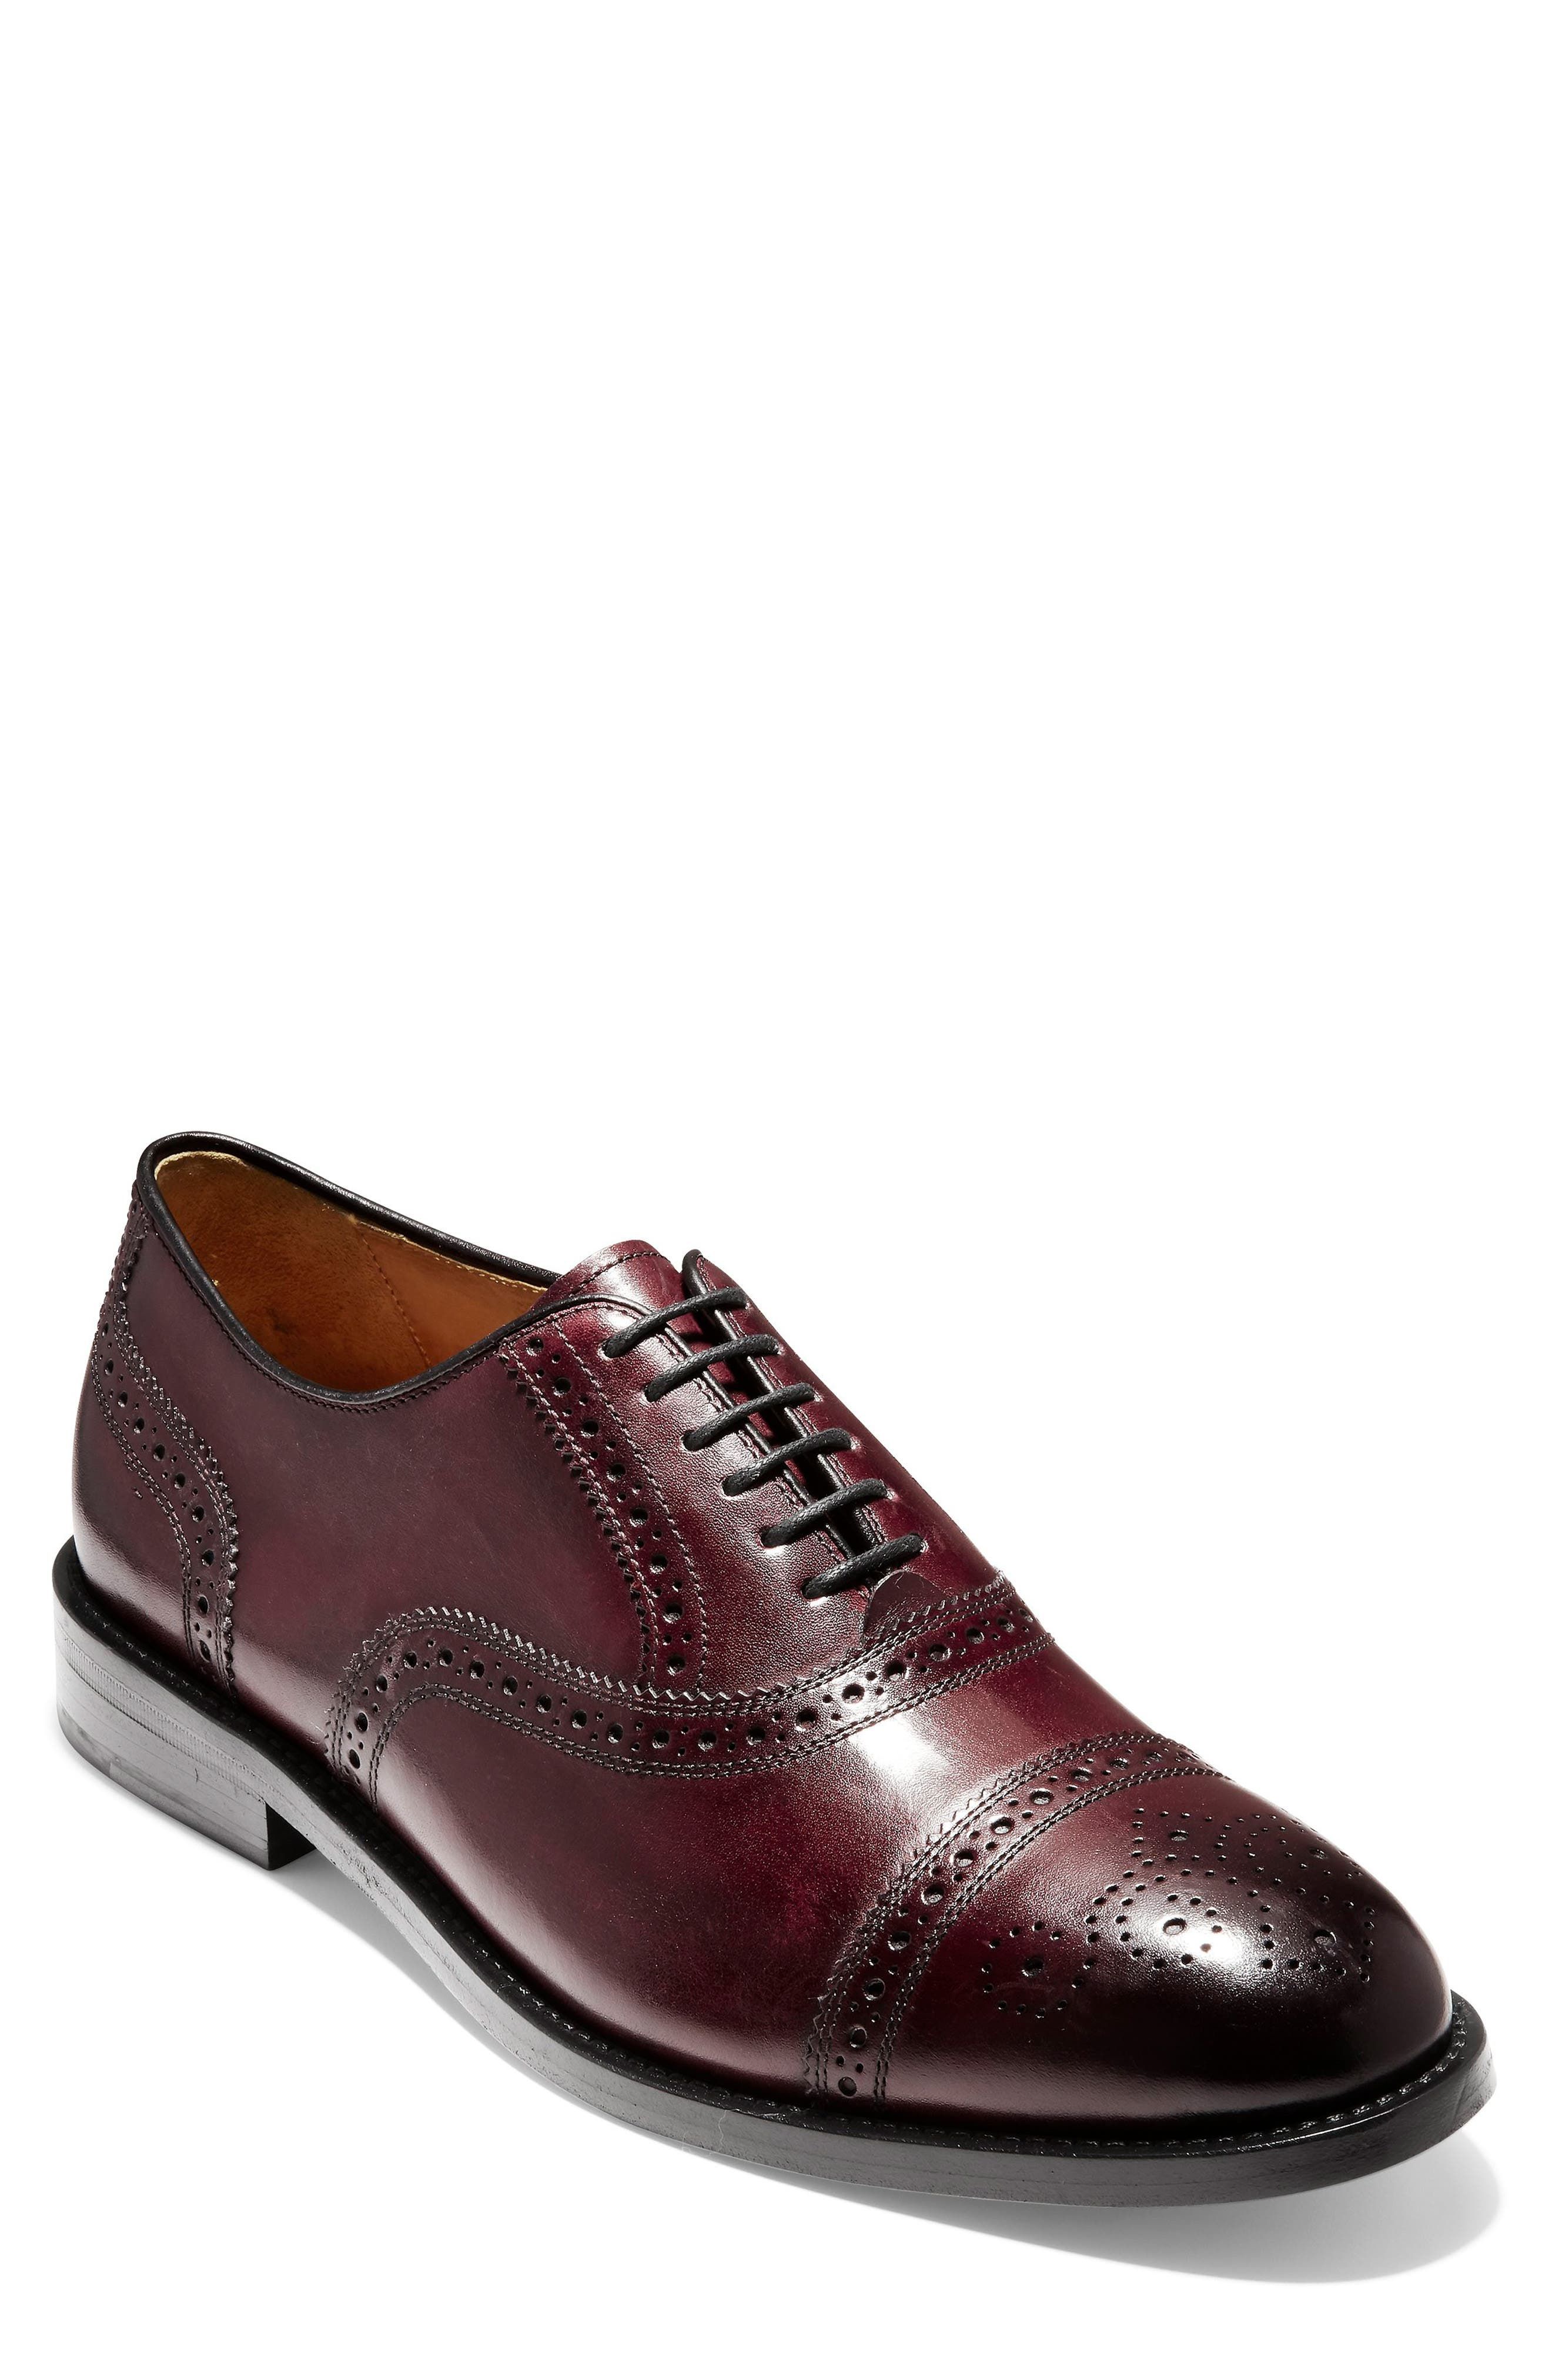 American Classics Kneeland Cap Toe Oxford,                         Main,                         color, Oxblood Leather